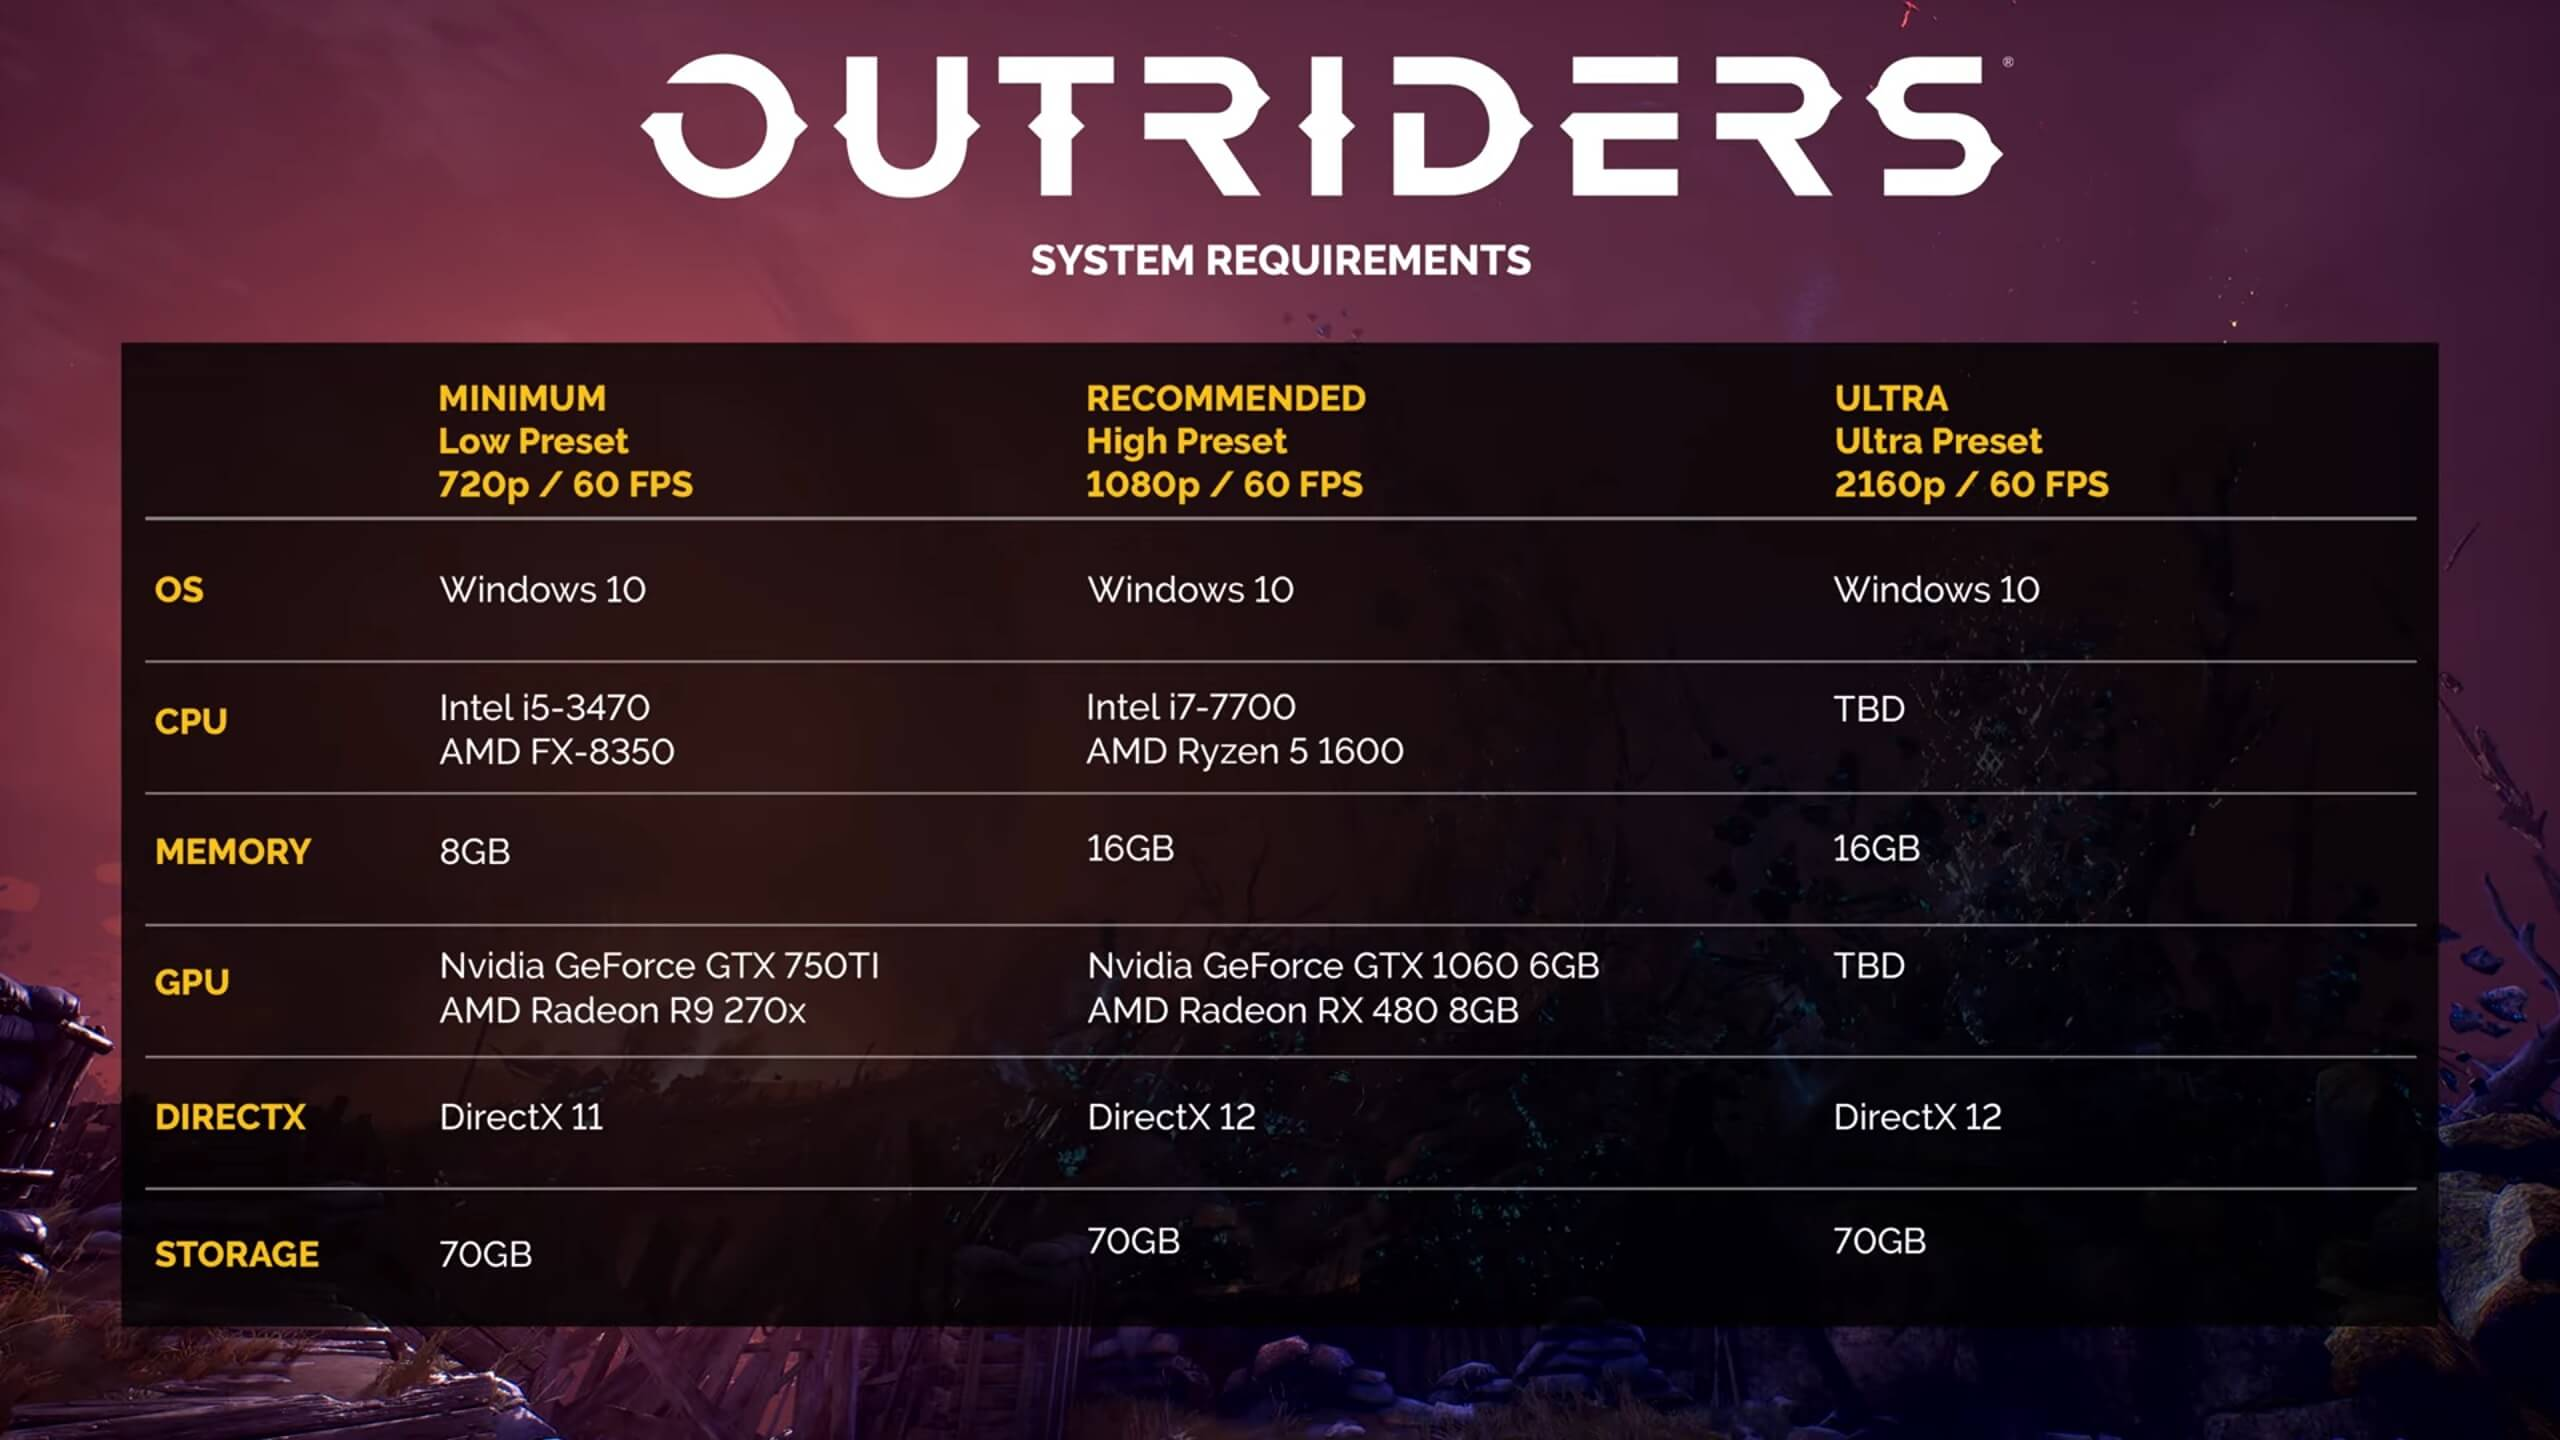 Outriders PC requirements